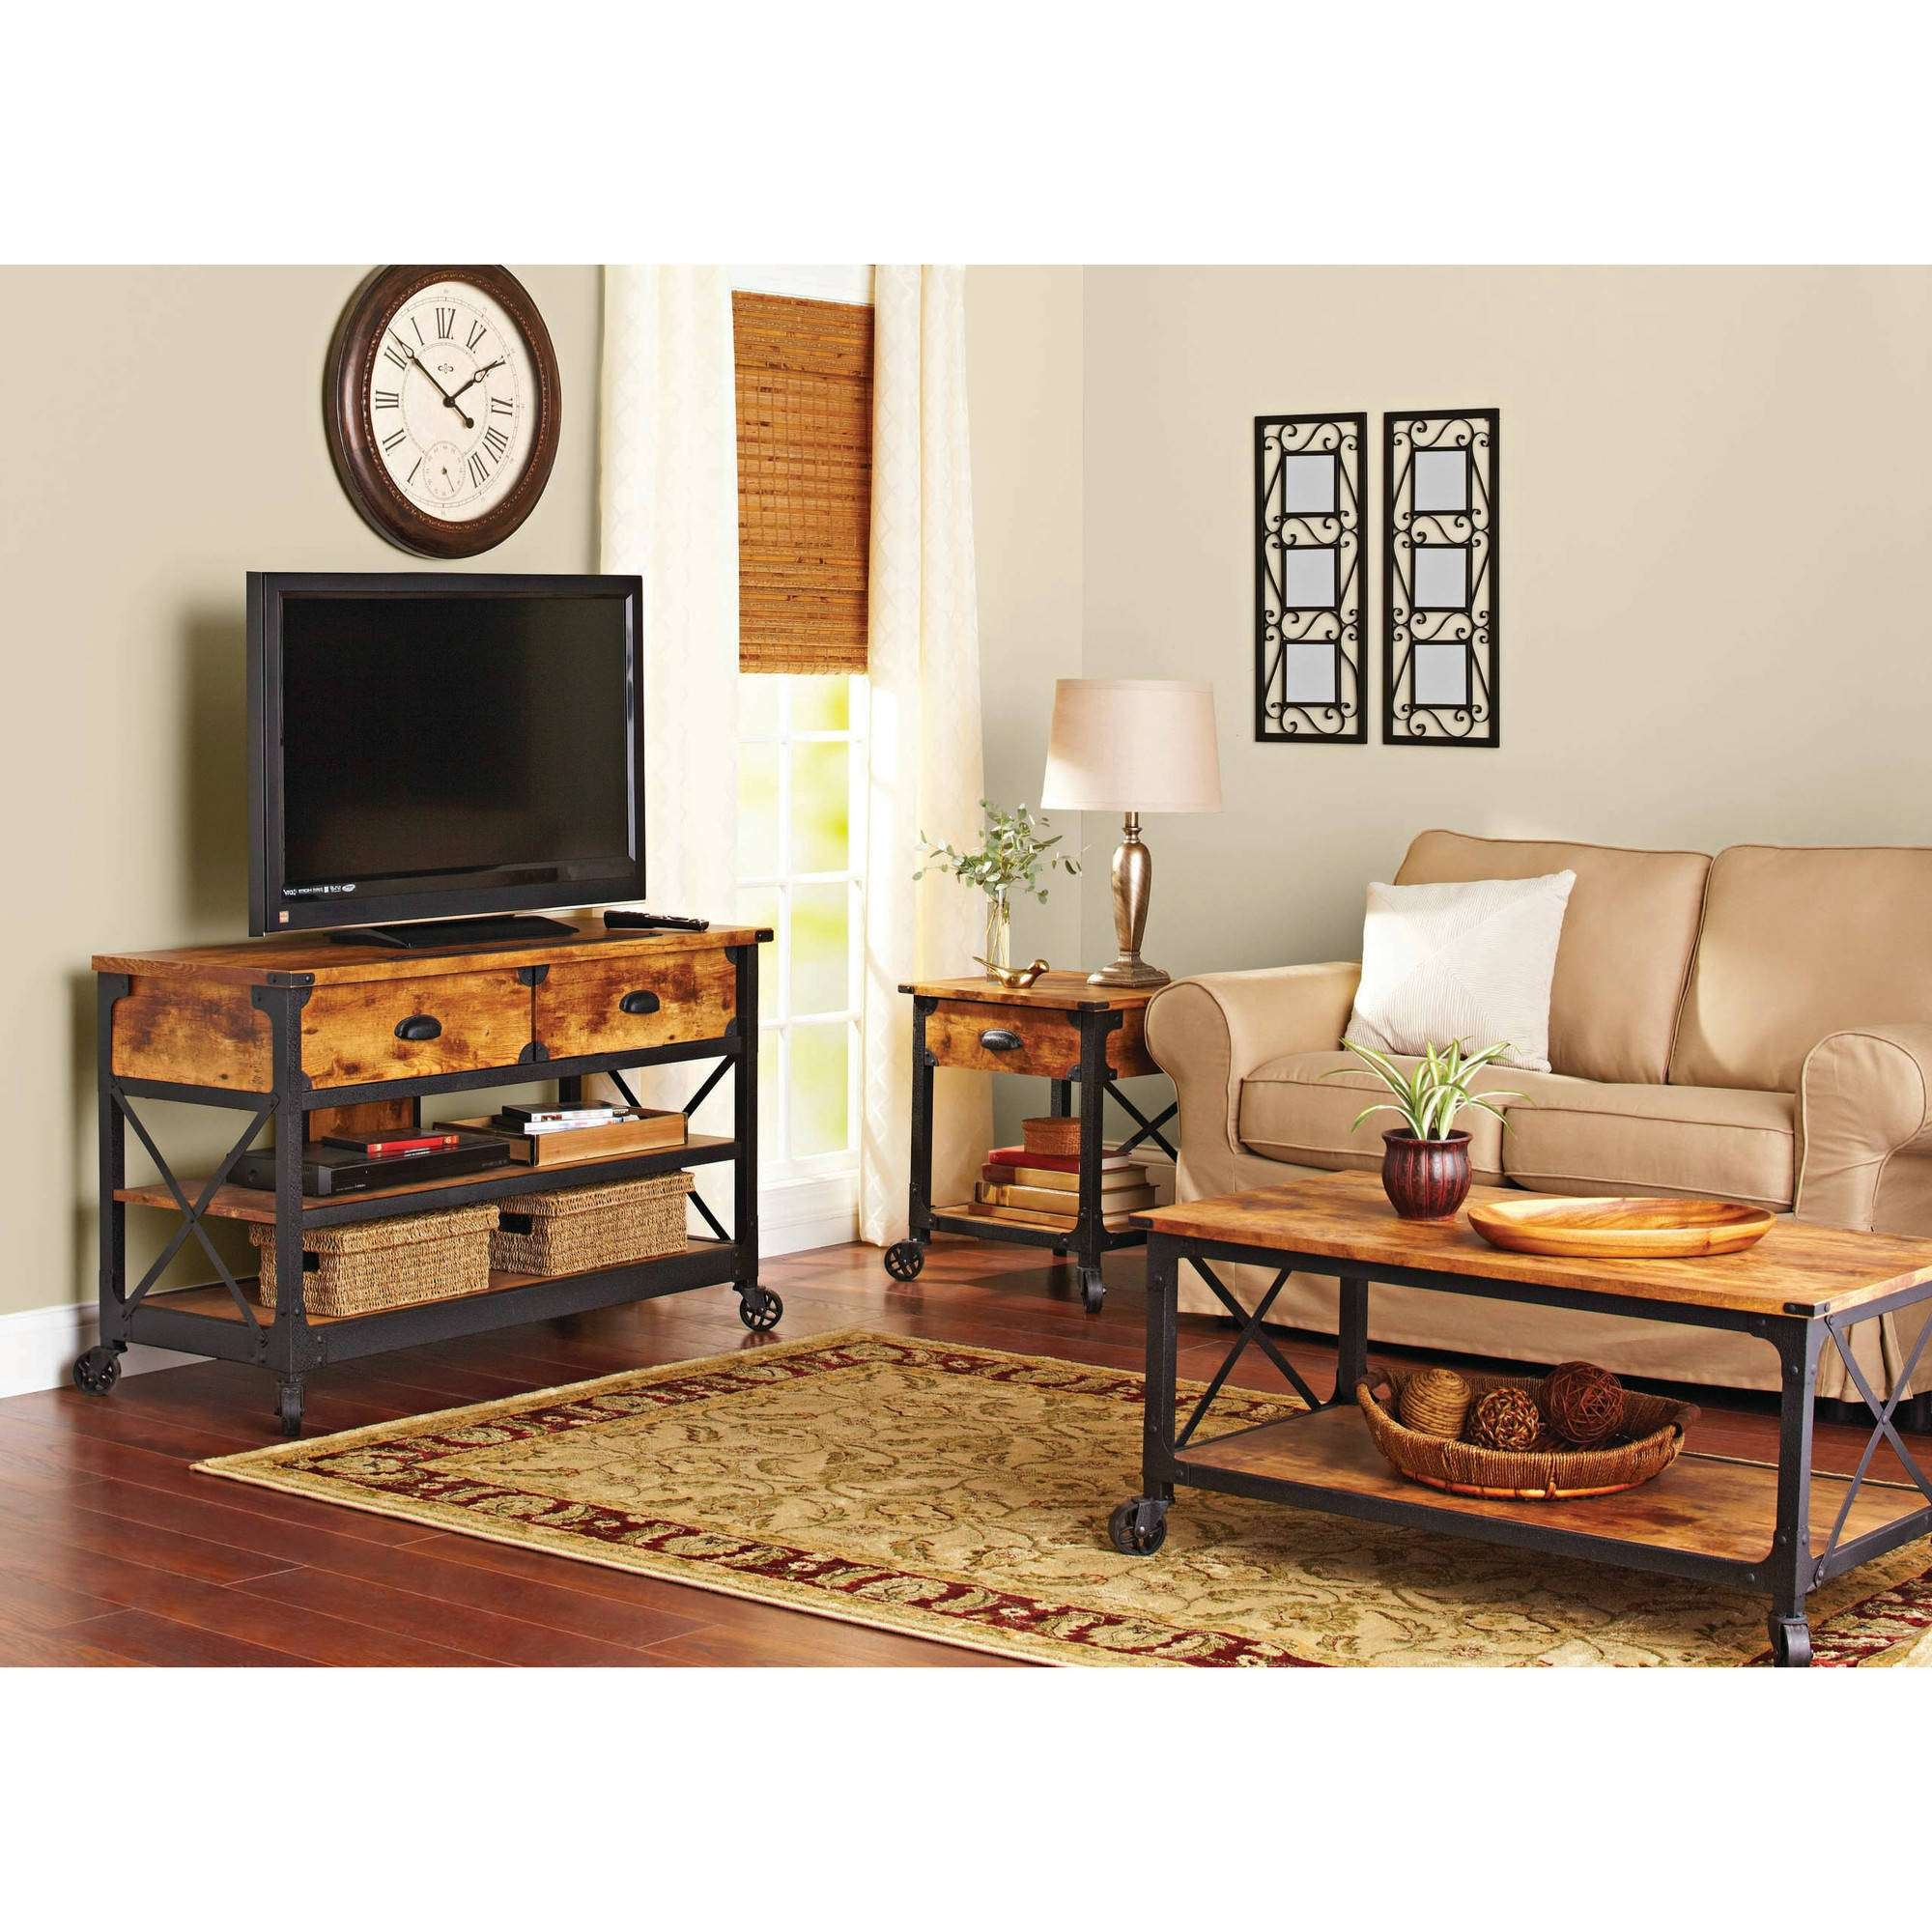 Coffee Table : Coffee Table Tv Stand And Set Cheap Sets End Within Tv Stands Coffee Table Sets (View 12 of 15)